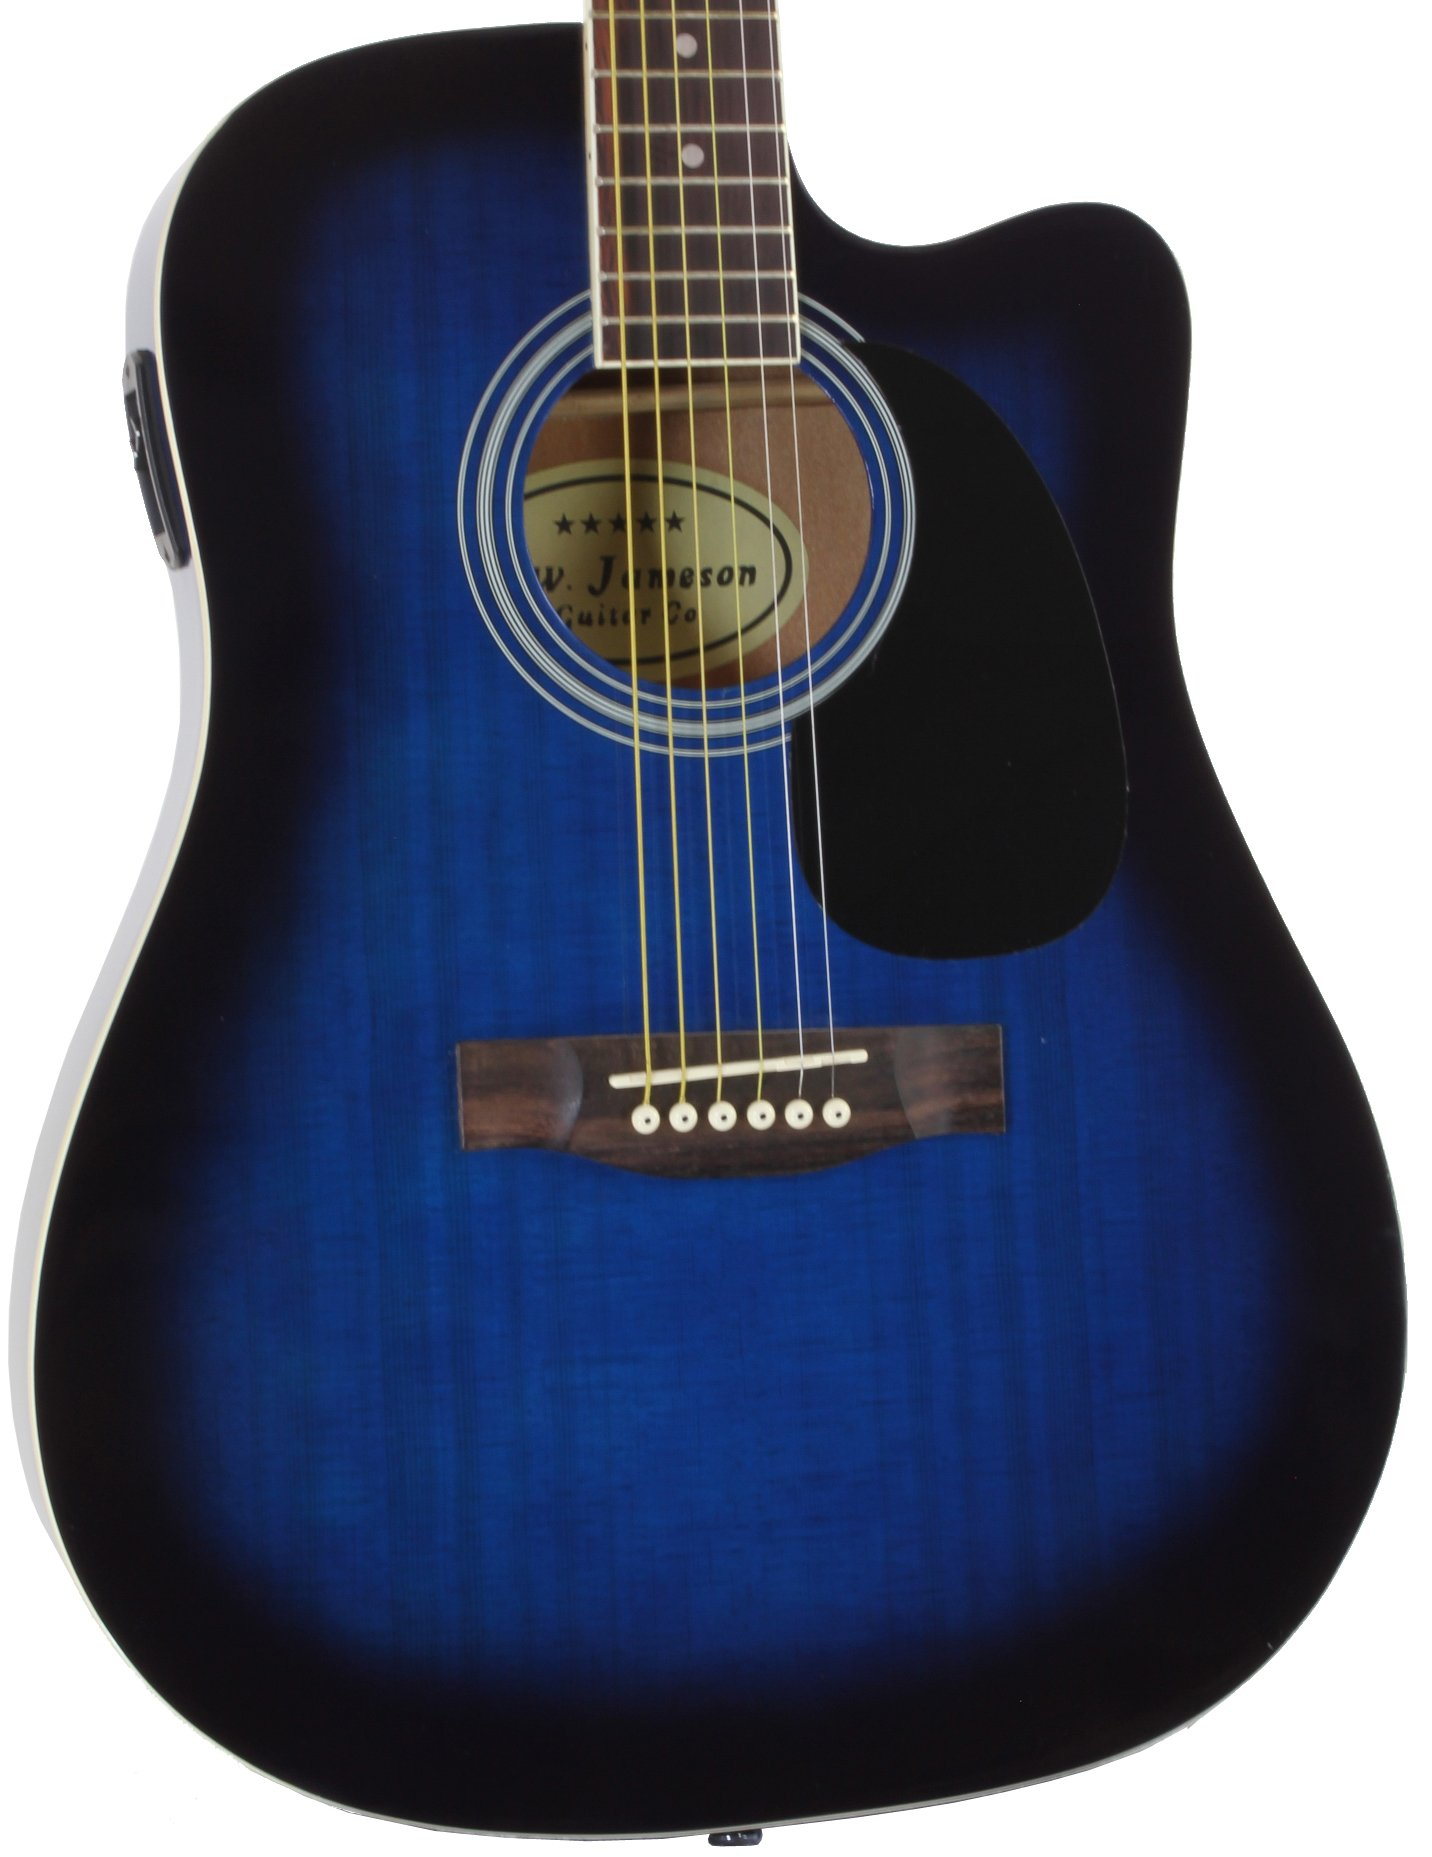 Jameson Guitars Full Size Thinline Acoustic Electric Guitar with Free Gig Bag Case & Picks Blue Right Handed by Jameson Guitars